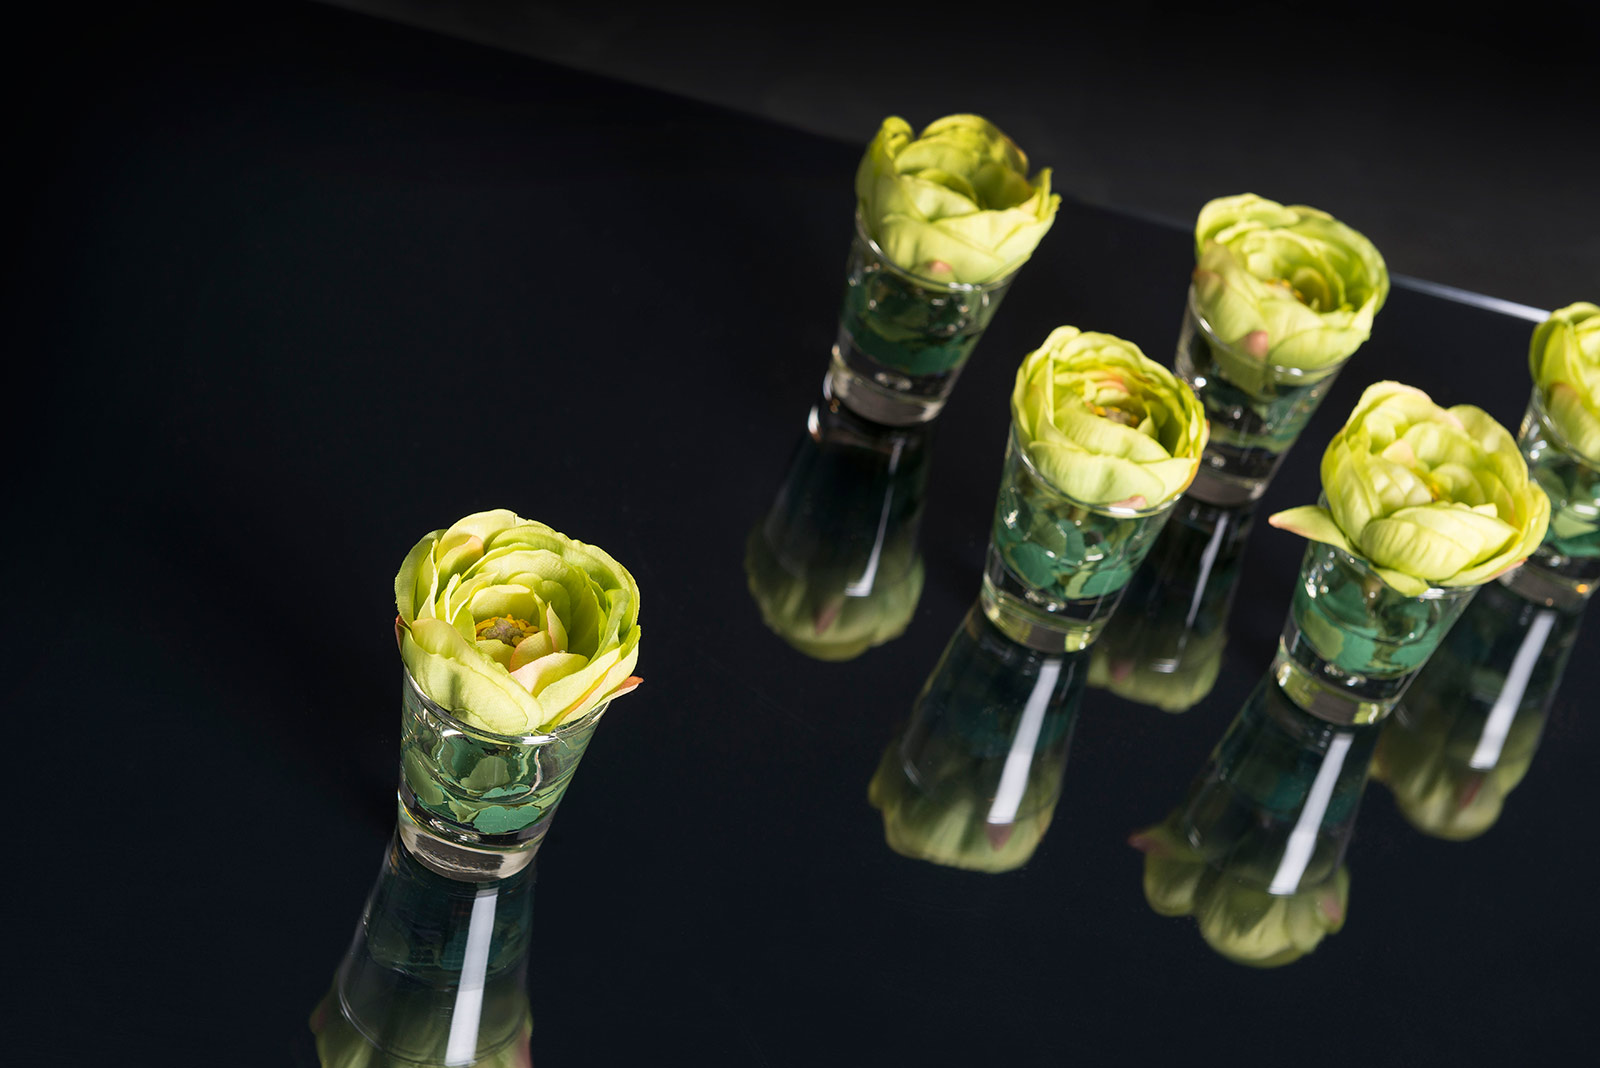 Small floral arrangements in vases by VG New Trend - Masha Shapiro Agency.jpg